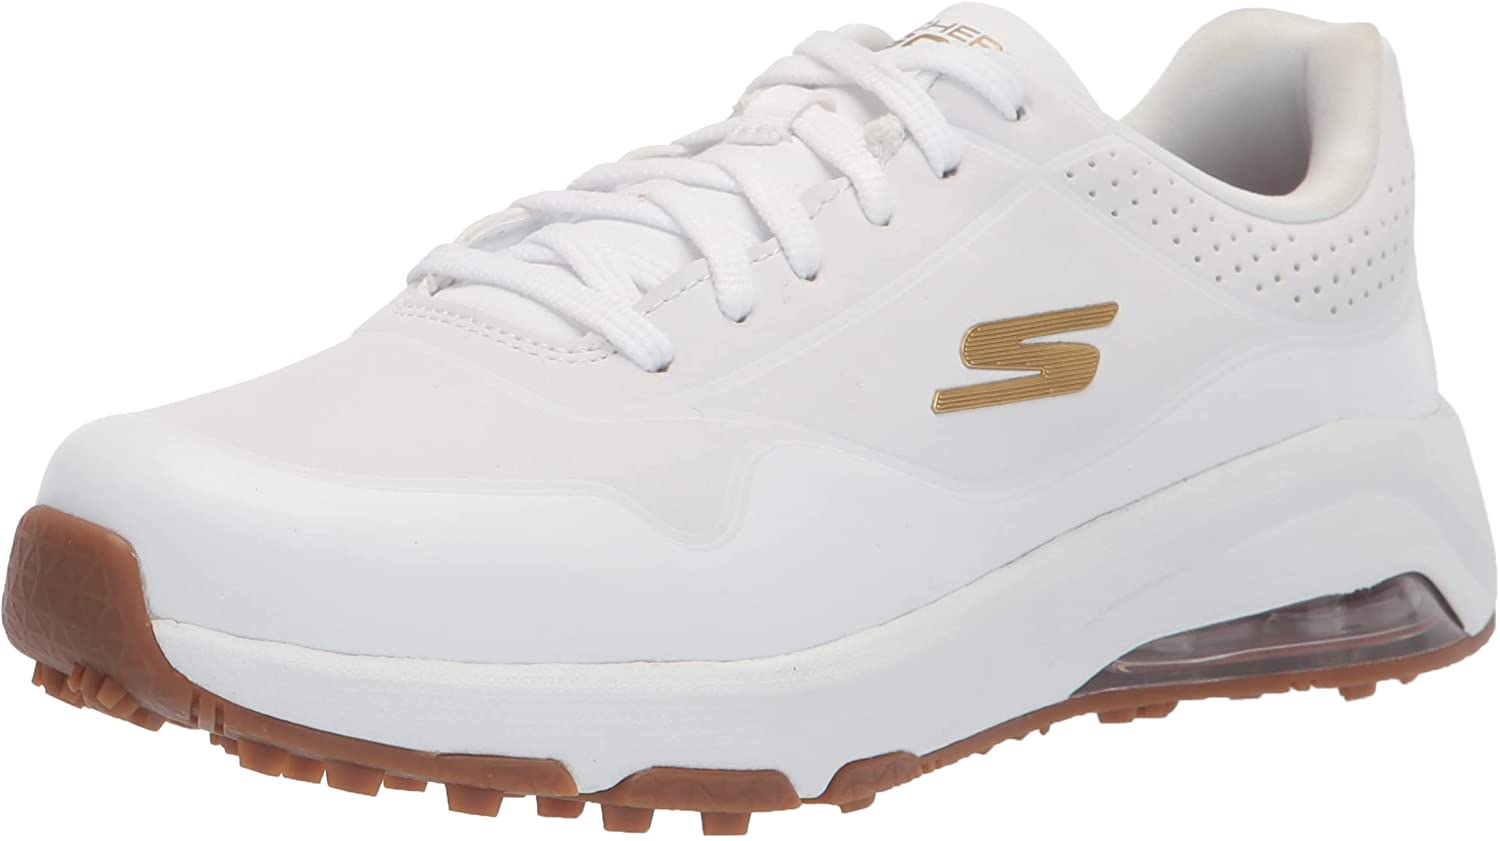 Skechers Women's Skech-air Dos Relaxed Spikeless Fit Shoe Golf Fixed price for sale Max 55% OFF